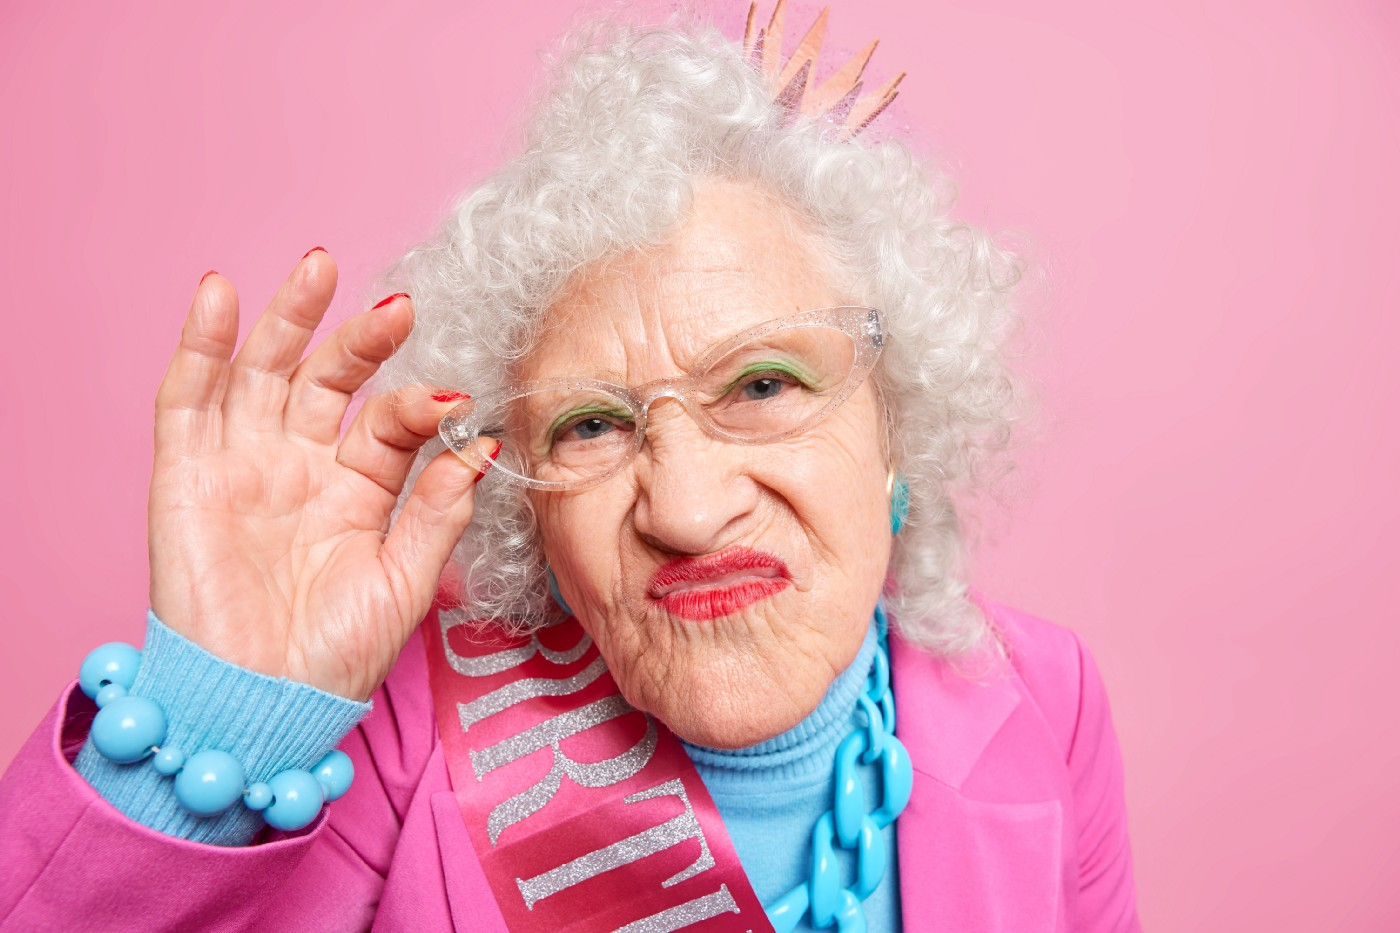 portrait-grey-haired-wrinkled-woman-pouts-lips-looks-attentively-keeps-hand-rim-glasses-dressed-fashionable-clothes—Un Swede